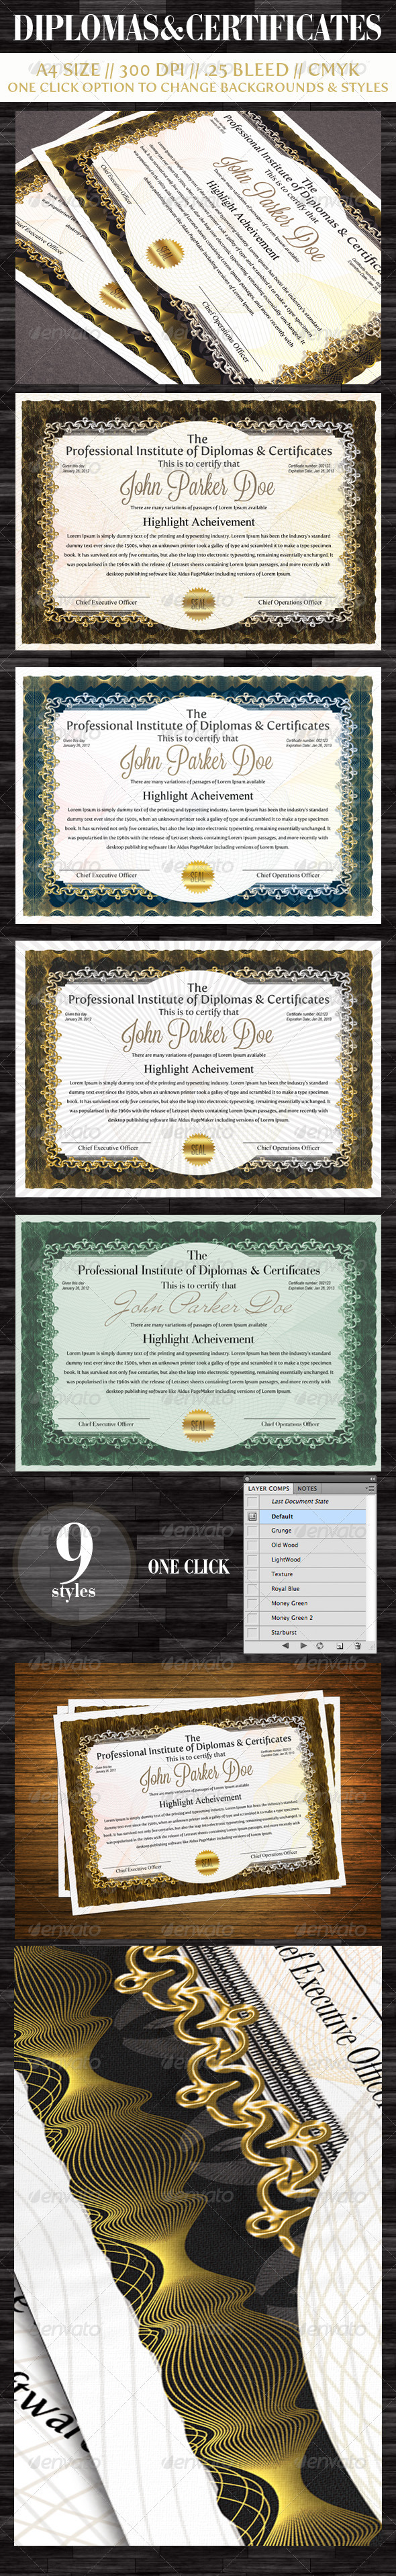 GraphicRiver Diplomas & Certificates 1573633